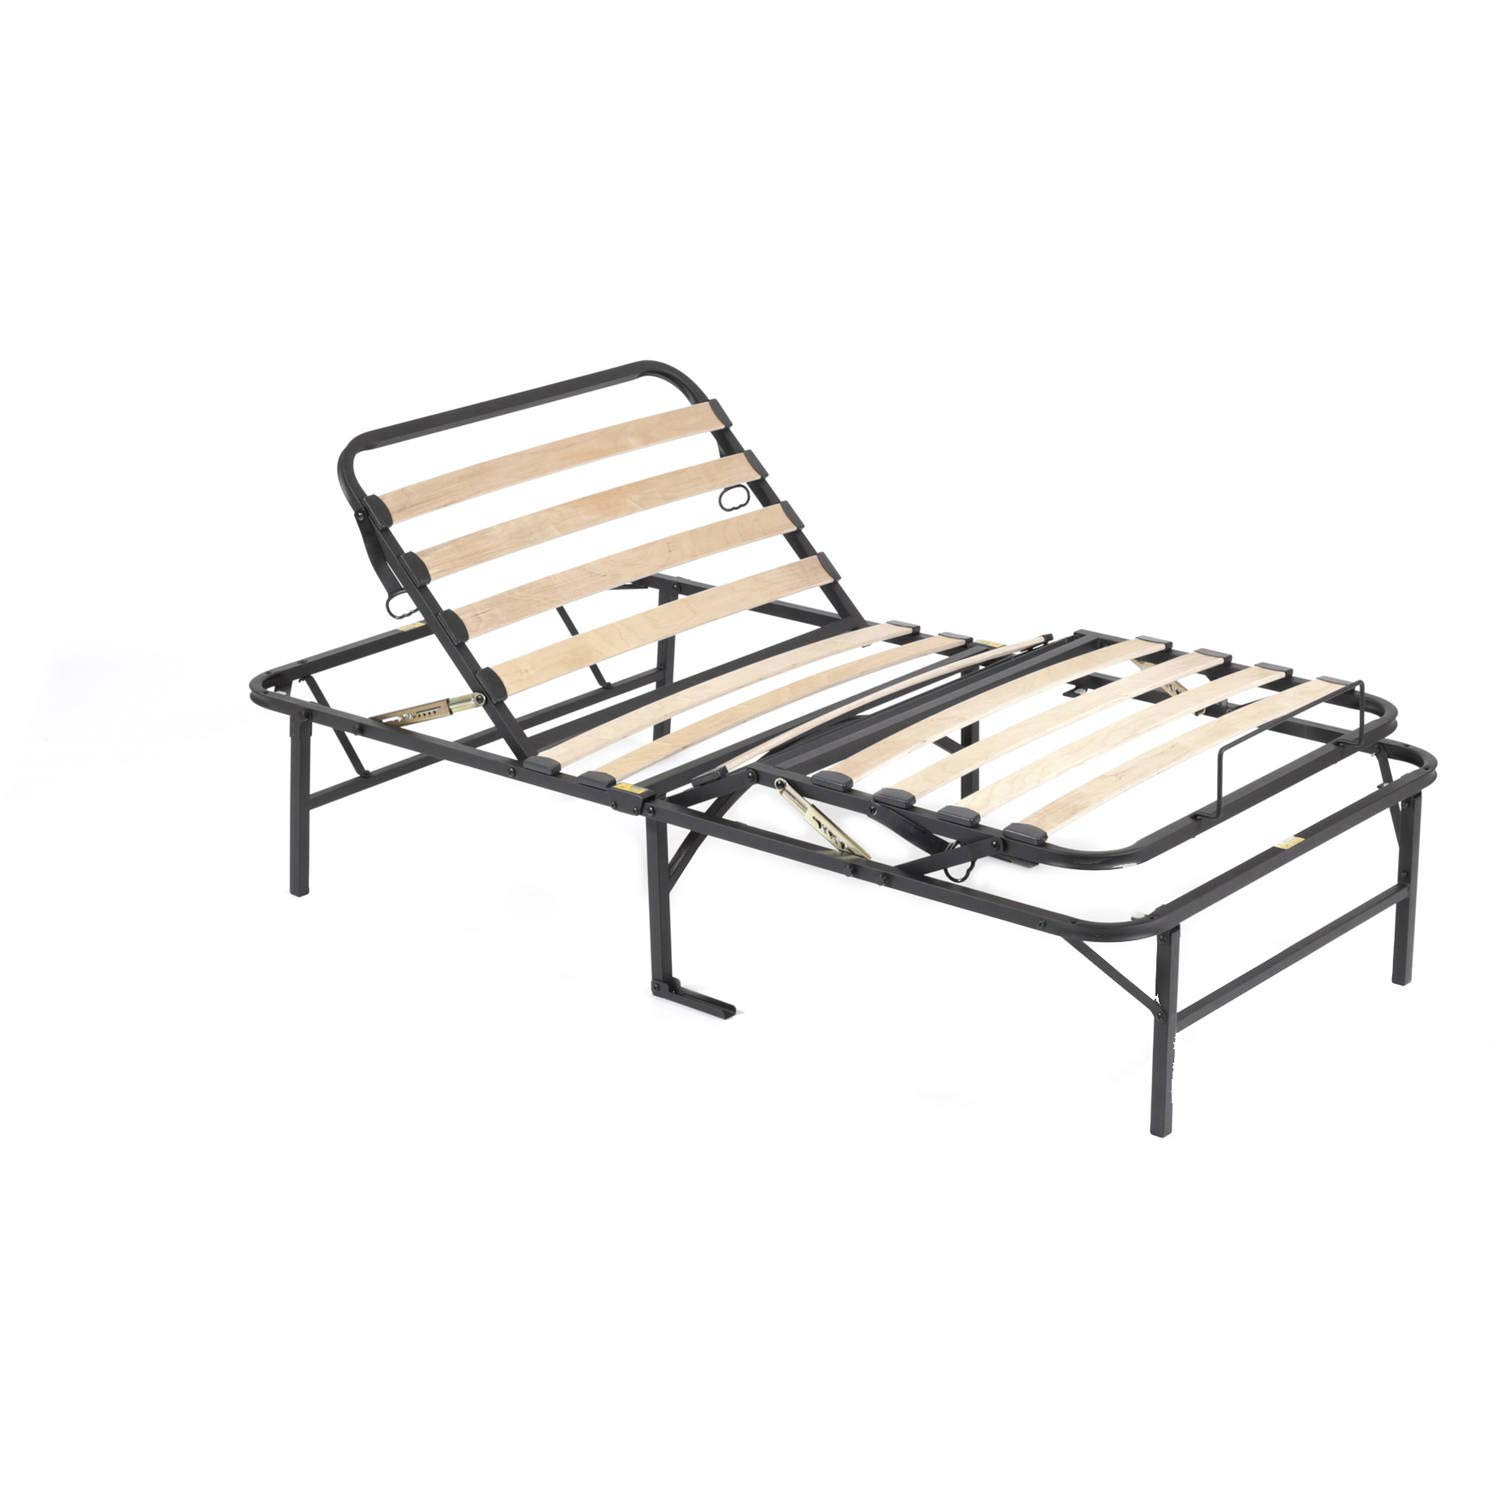 Wood Slat Foundation, Sturdy Steel Construction with Durable and Flexible Support Wires, Manually Adjustable Head up to 80 Degrees and Foot 30 Degrees, No Box Spring or Frame Required, Twin